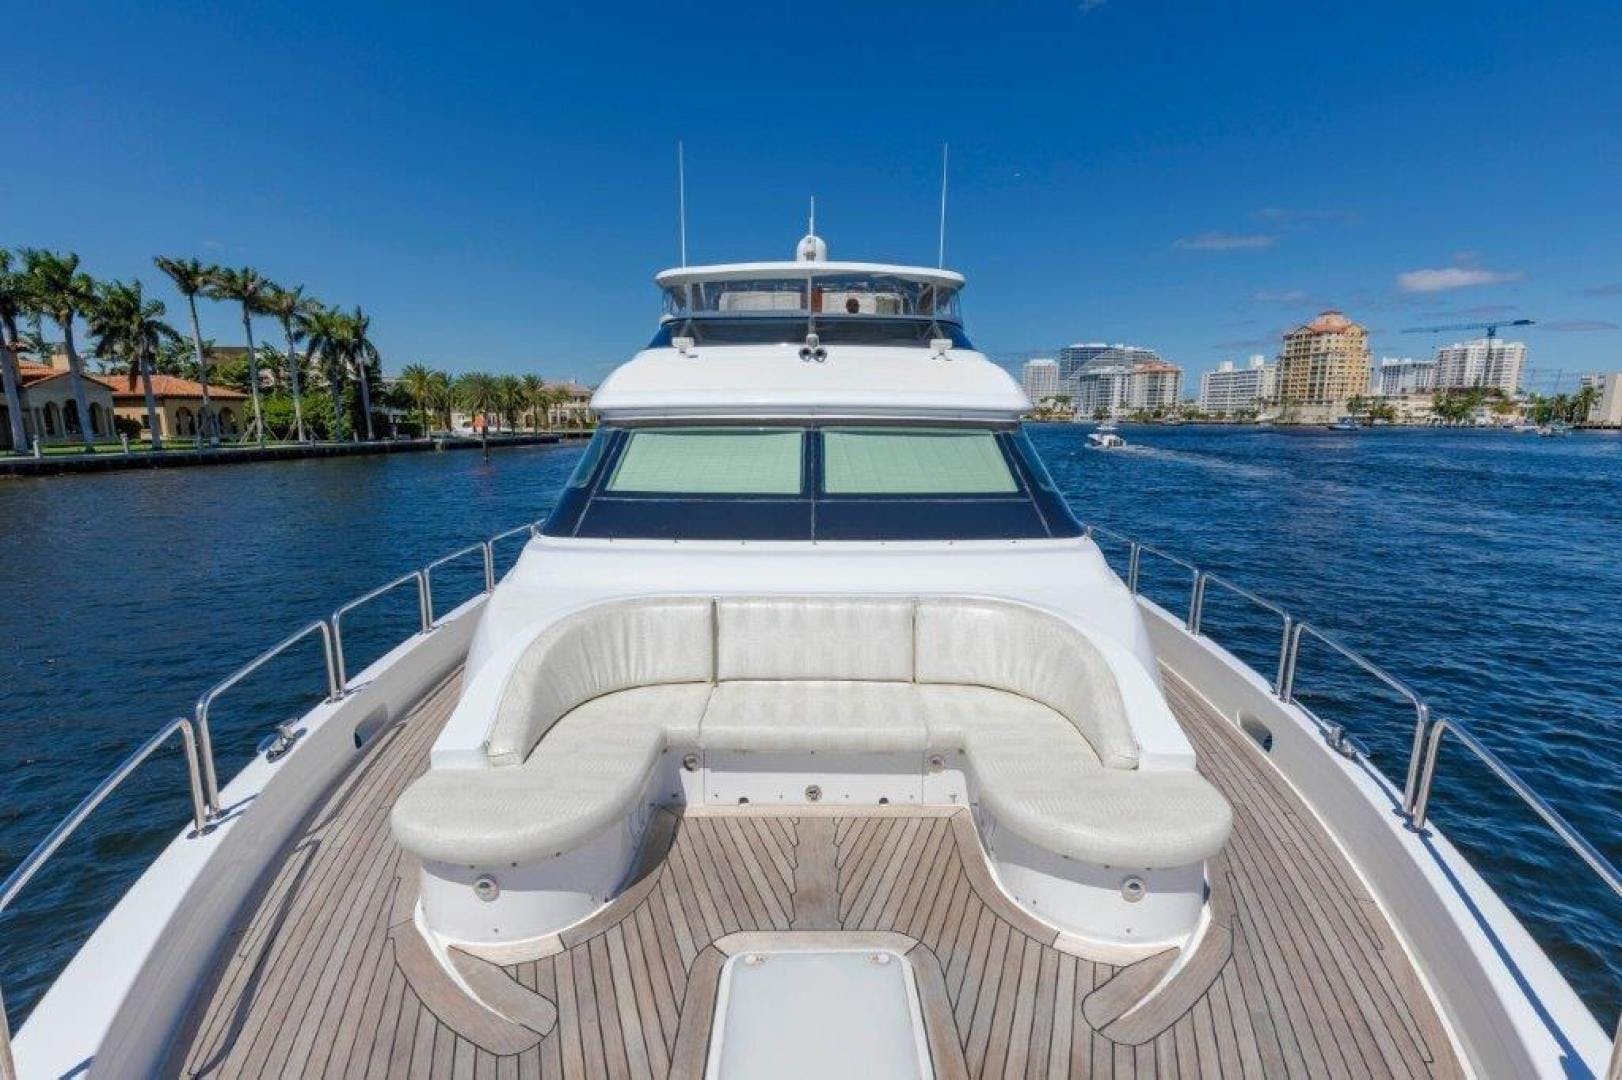 2013 Hatteras 80' Motor Yacht LEXUS LADY | Picture 4 of 42